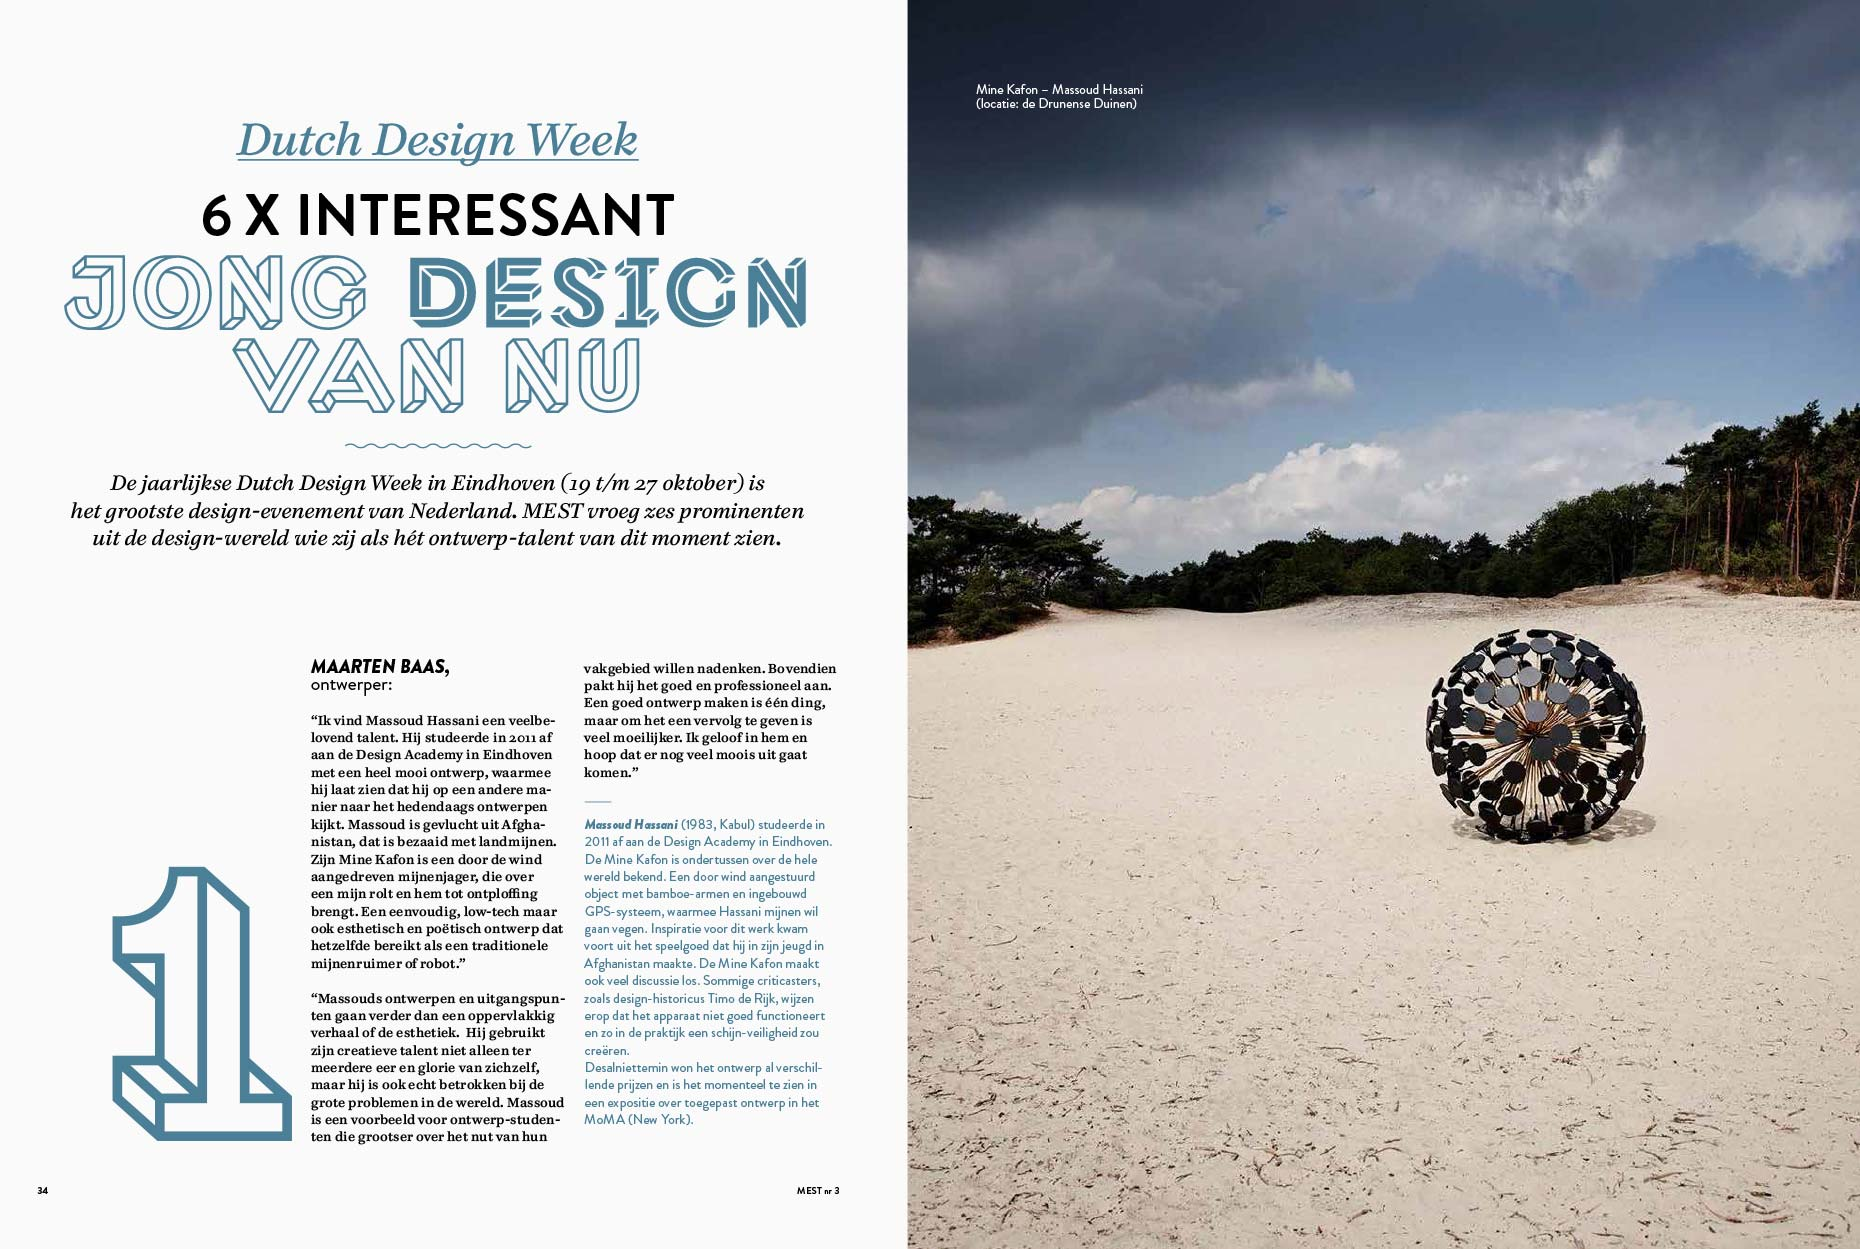 DUTCH-DESIGN-1